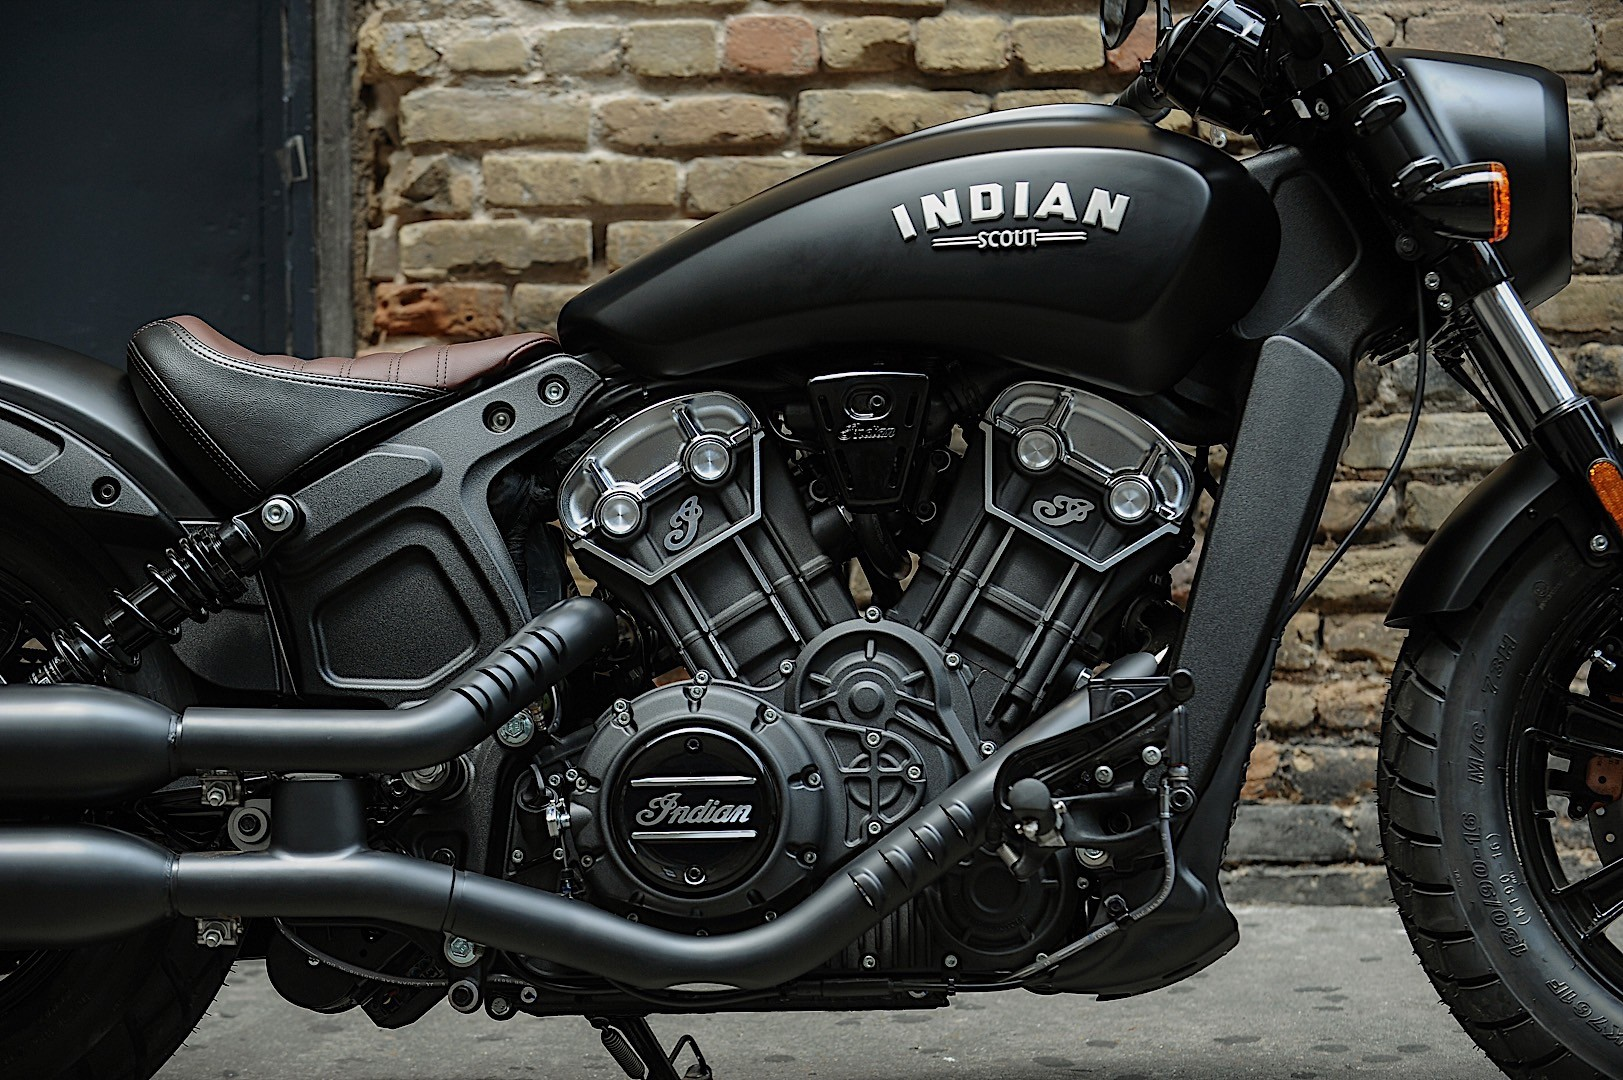 Indian Chief Engine Specs 2002 Scout Wiring Diagrams